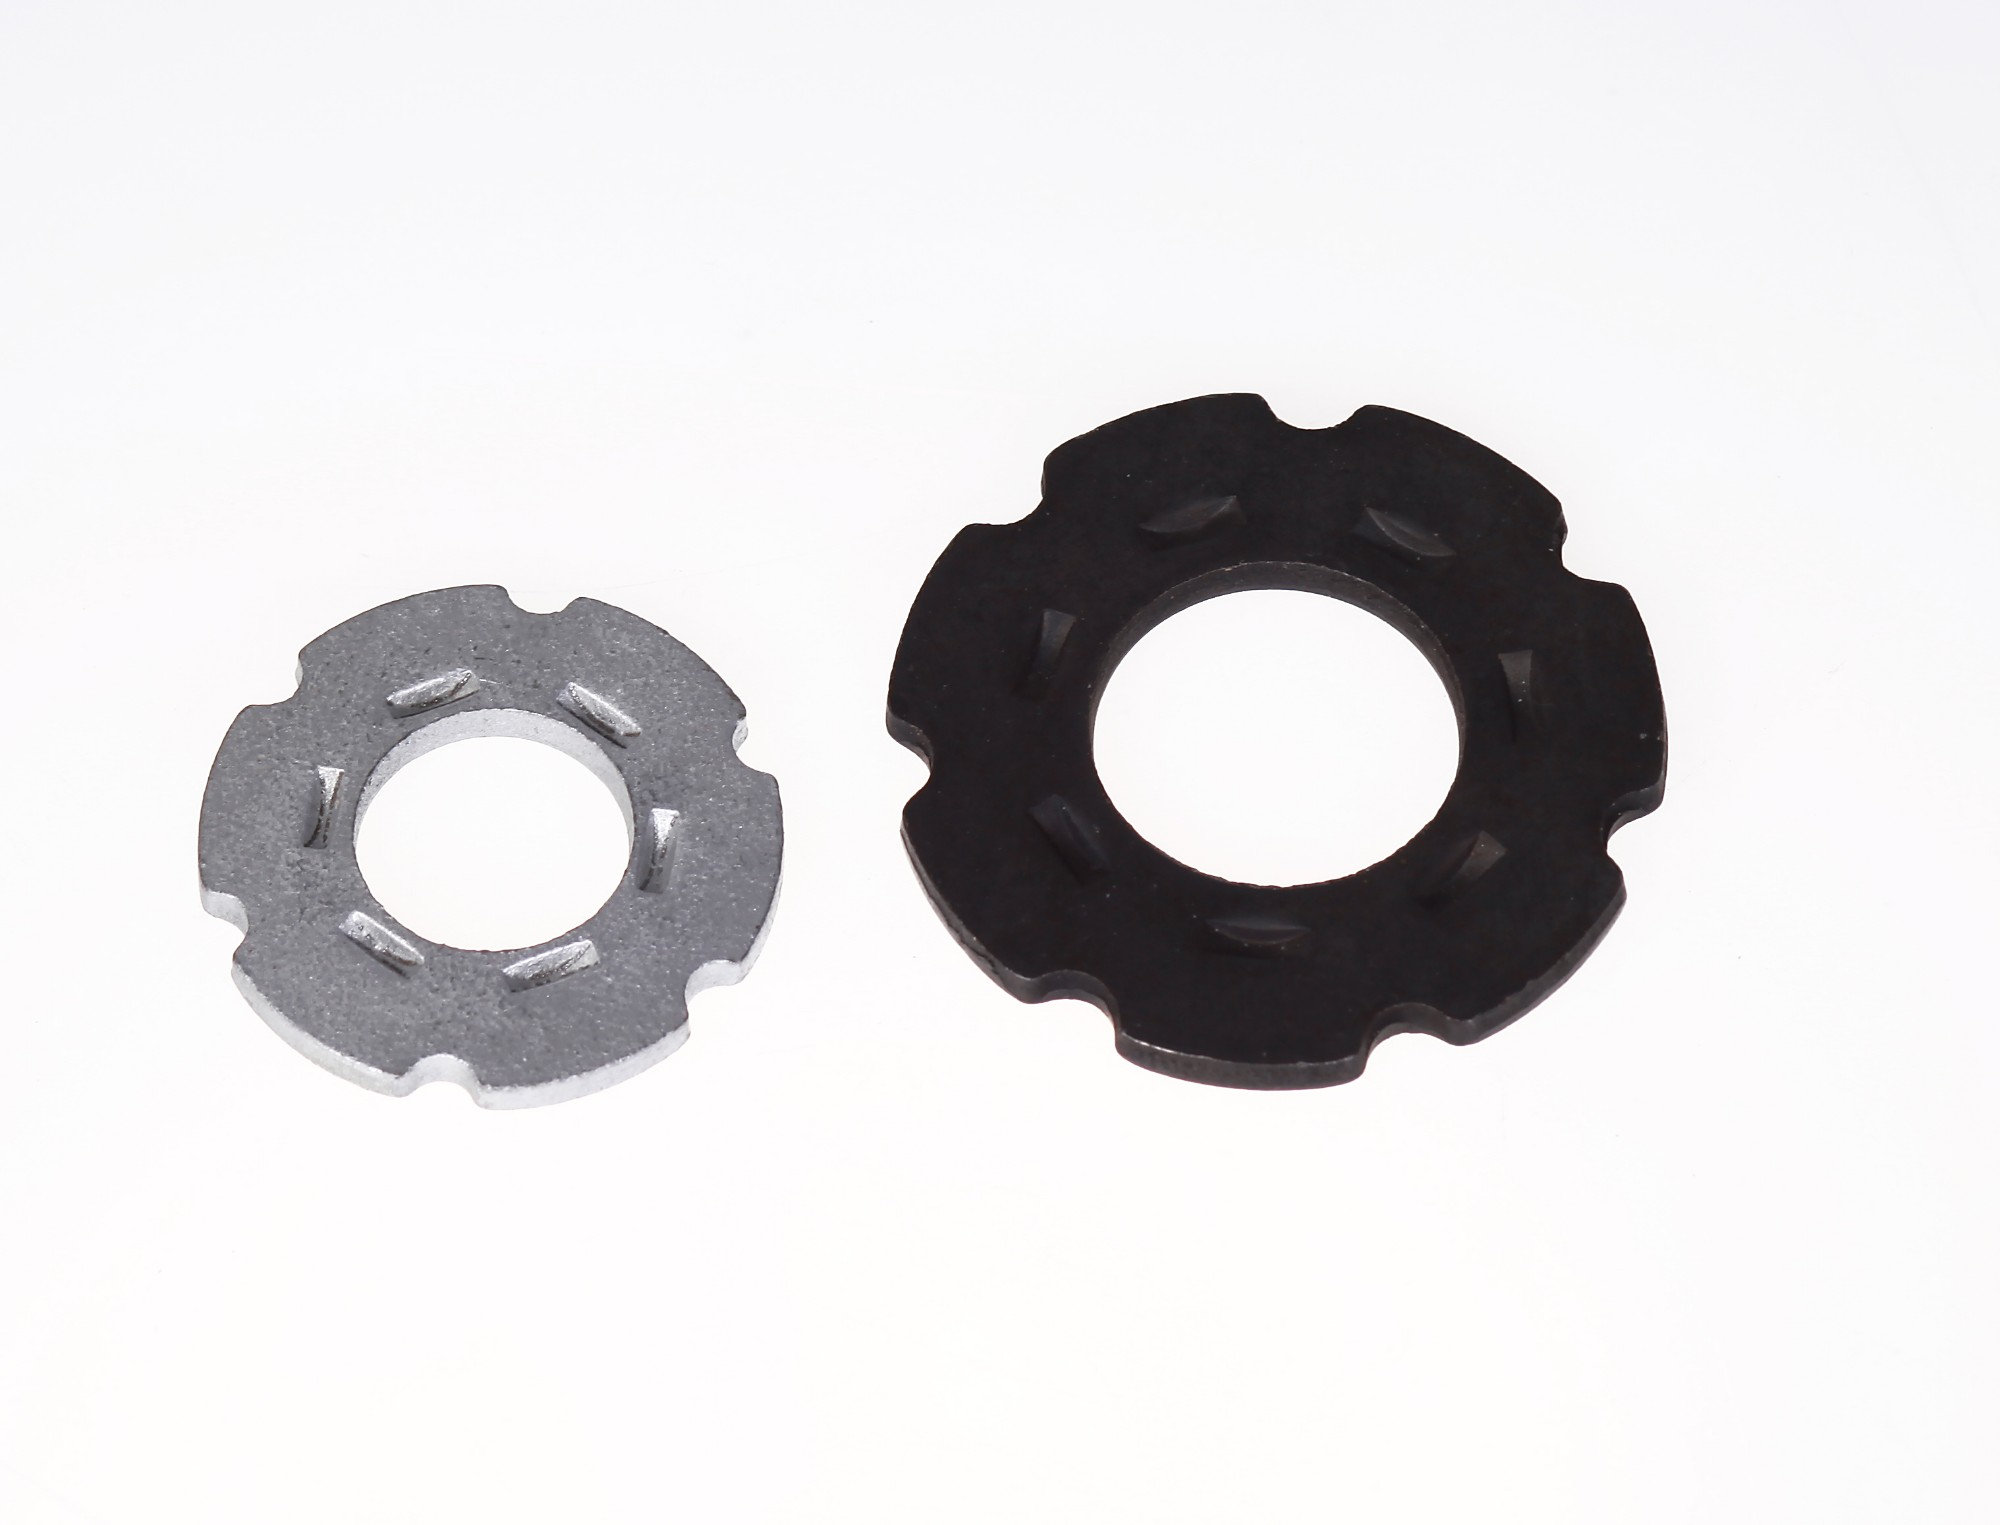 ASTM F959 Direct Tension Indicating Washers Black Manufacturers, ASTM F959 Direct Tension Indicating Washers Black Factory, Supply ASTM F959 Direct Tension Indicating Washers Black